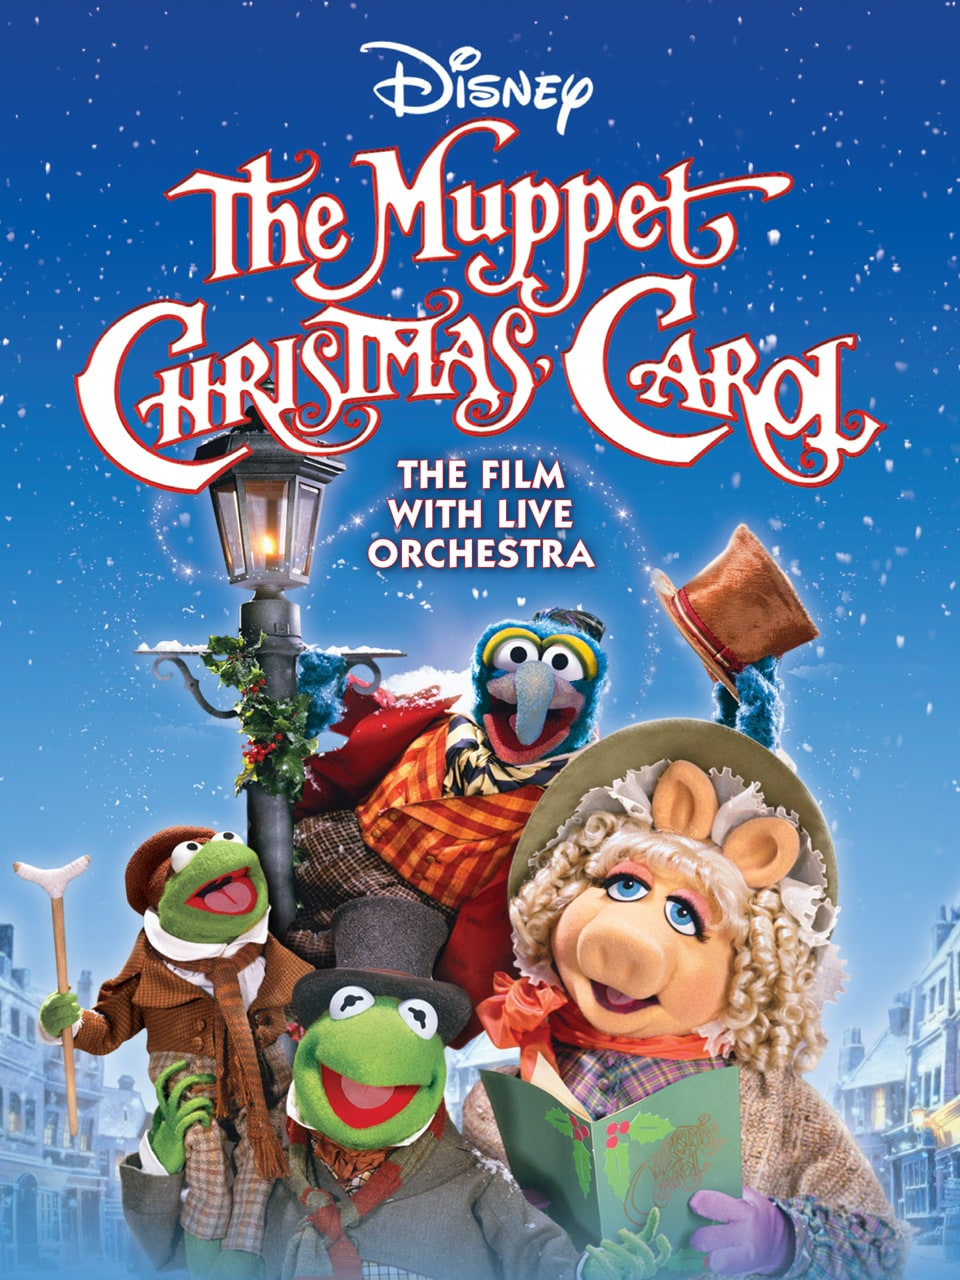 The cast of The Muppet Christmas Carol in Concert